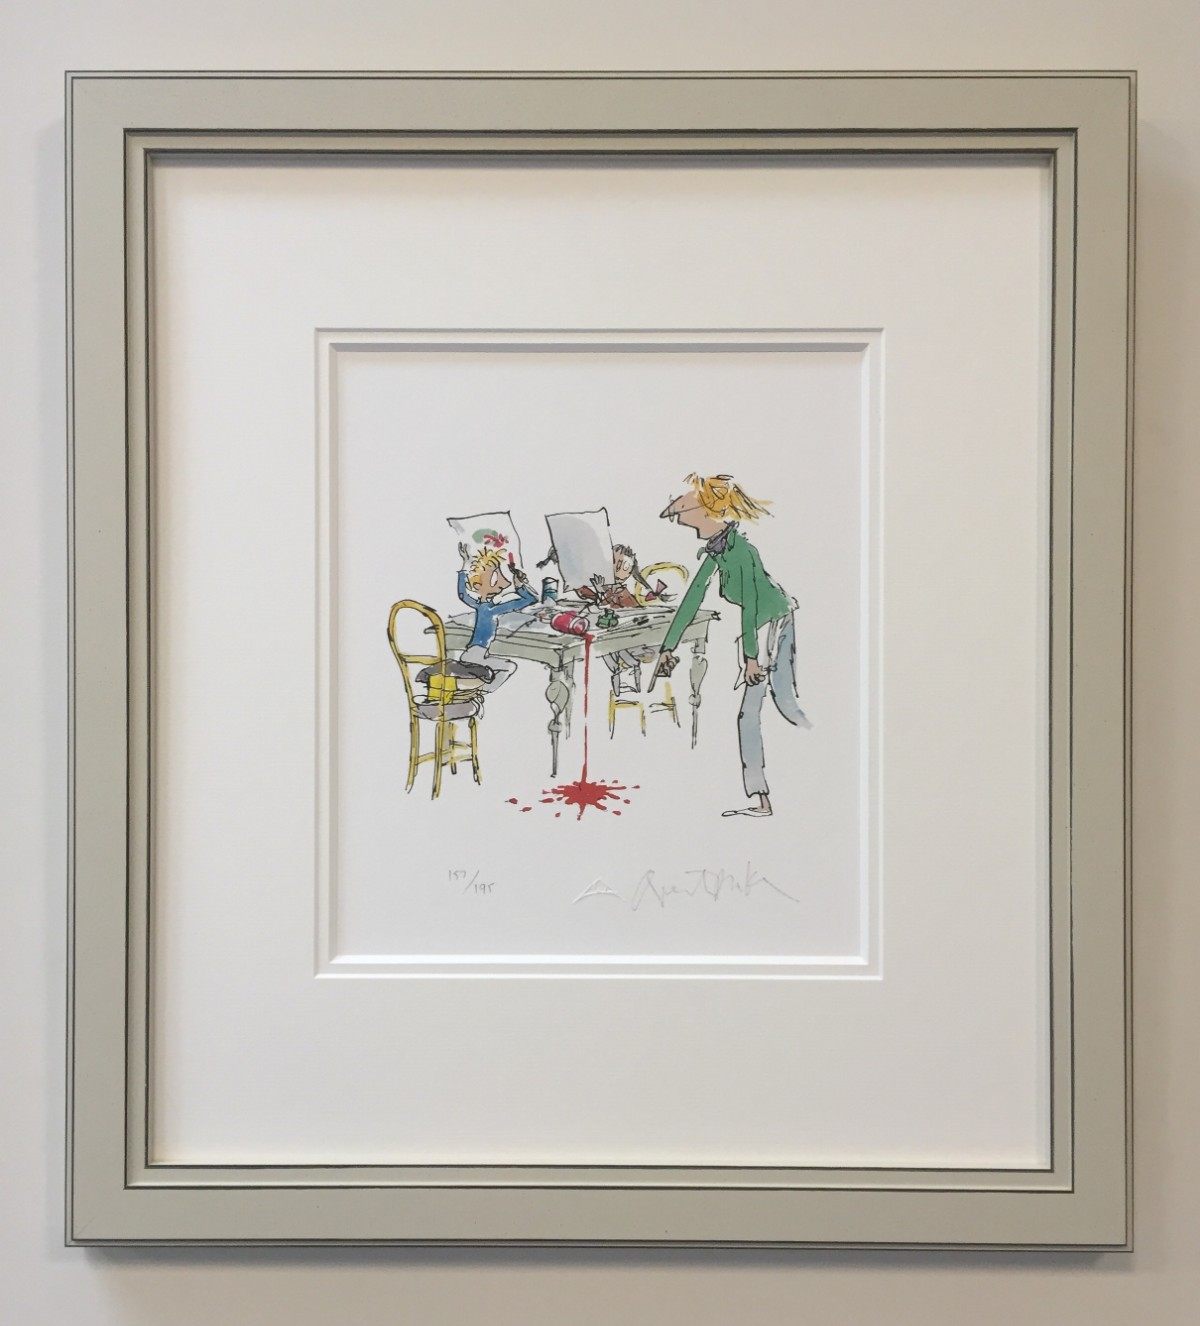 (Signed) - Simpkin That by Quentin Blake